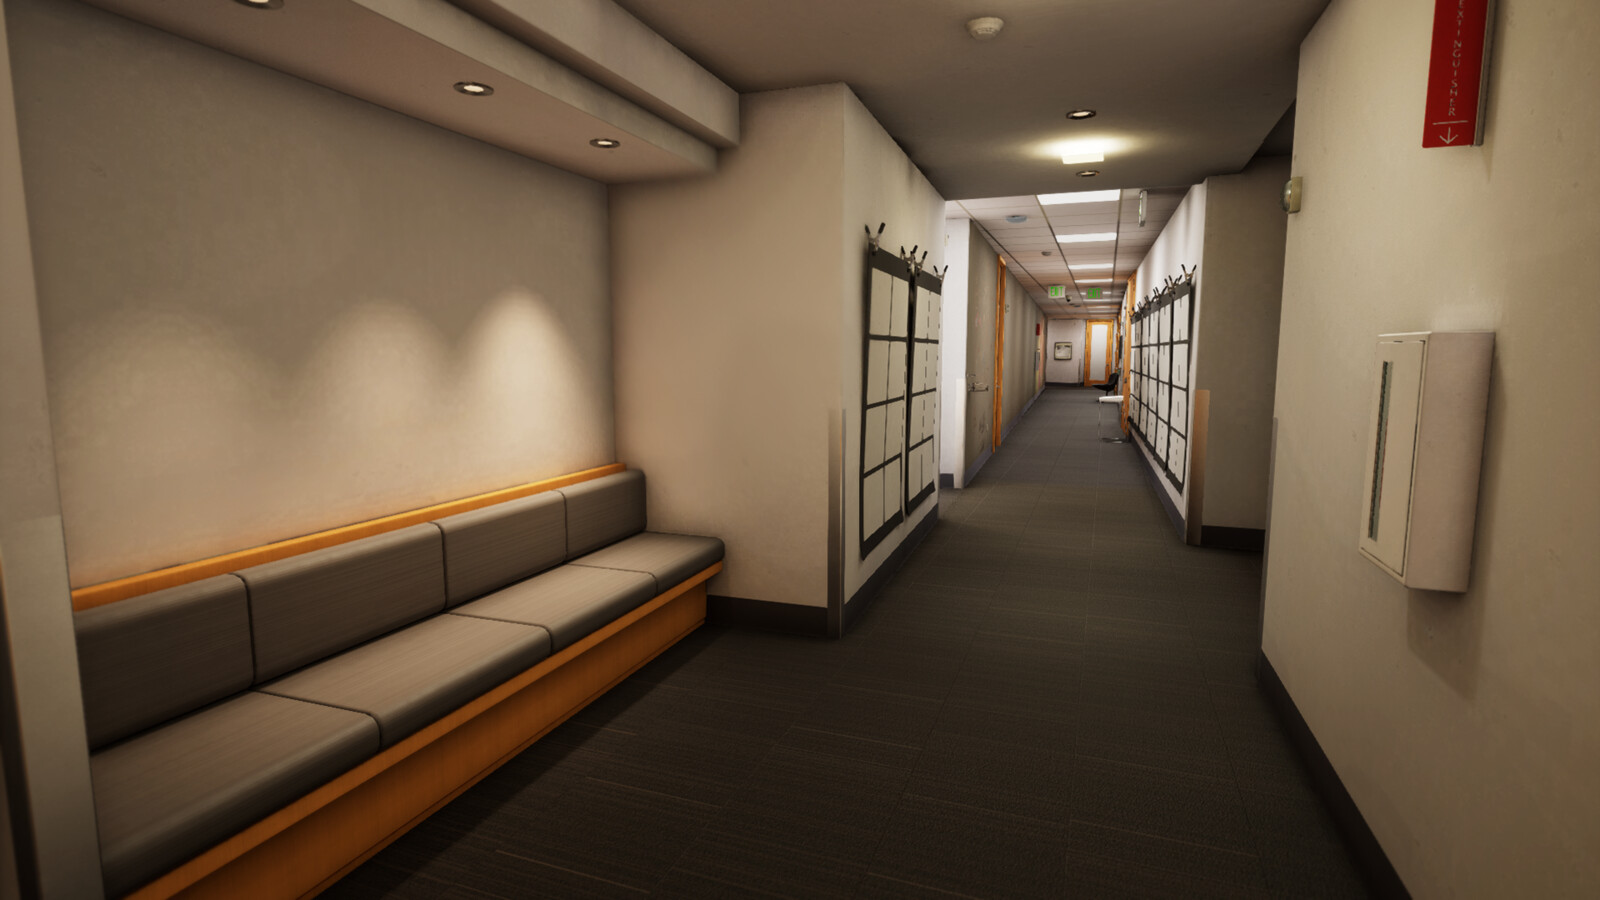 Modeled in Maya, textured with Substance Designer and assembled in Unreal Engine.